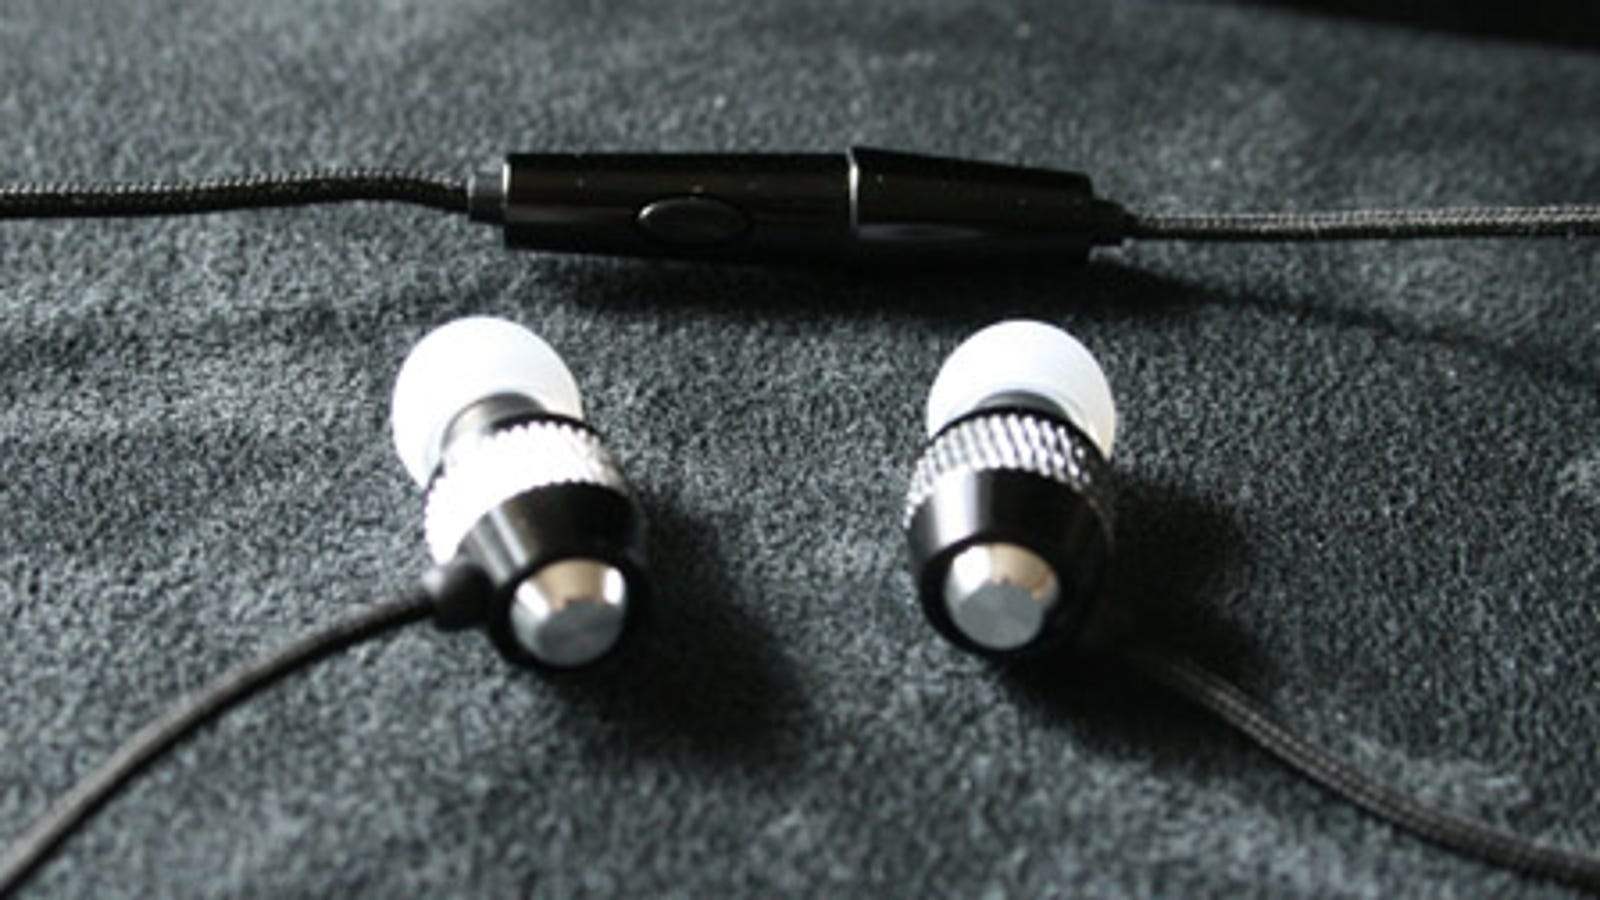 noise-cancelling earbuds for sleep - Lightning Round: V-Moda Vibe Duo (With iPhone Call Button)